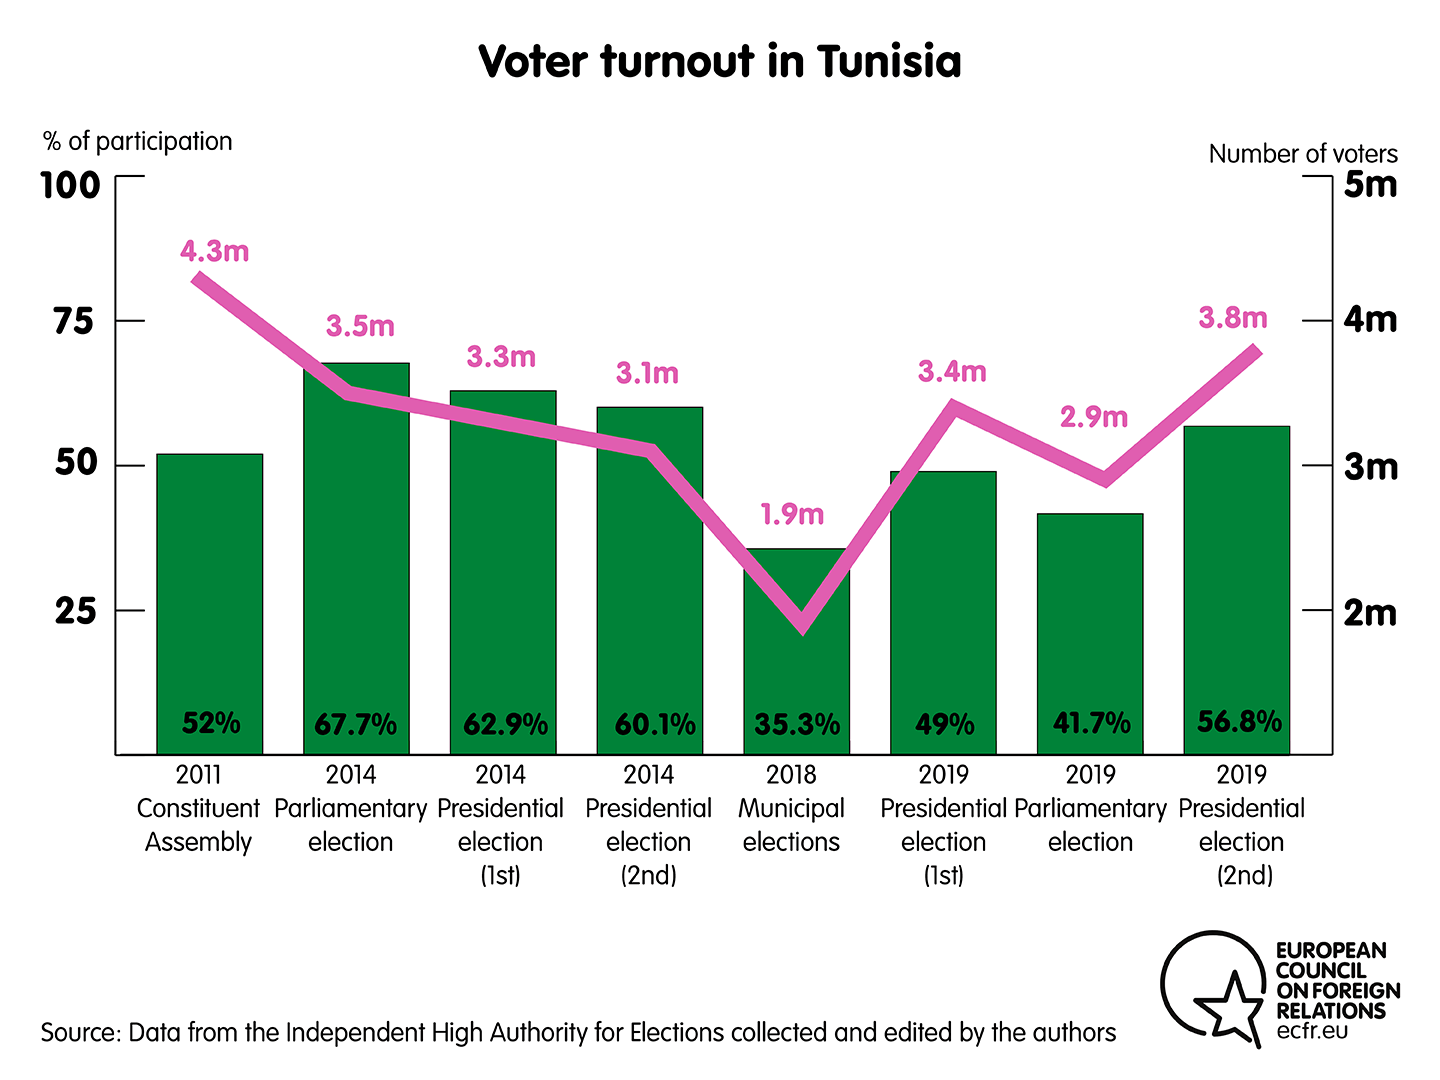 Voter turnout in Tunisia